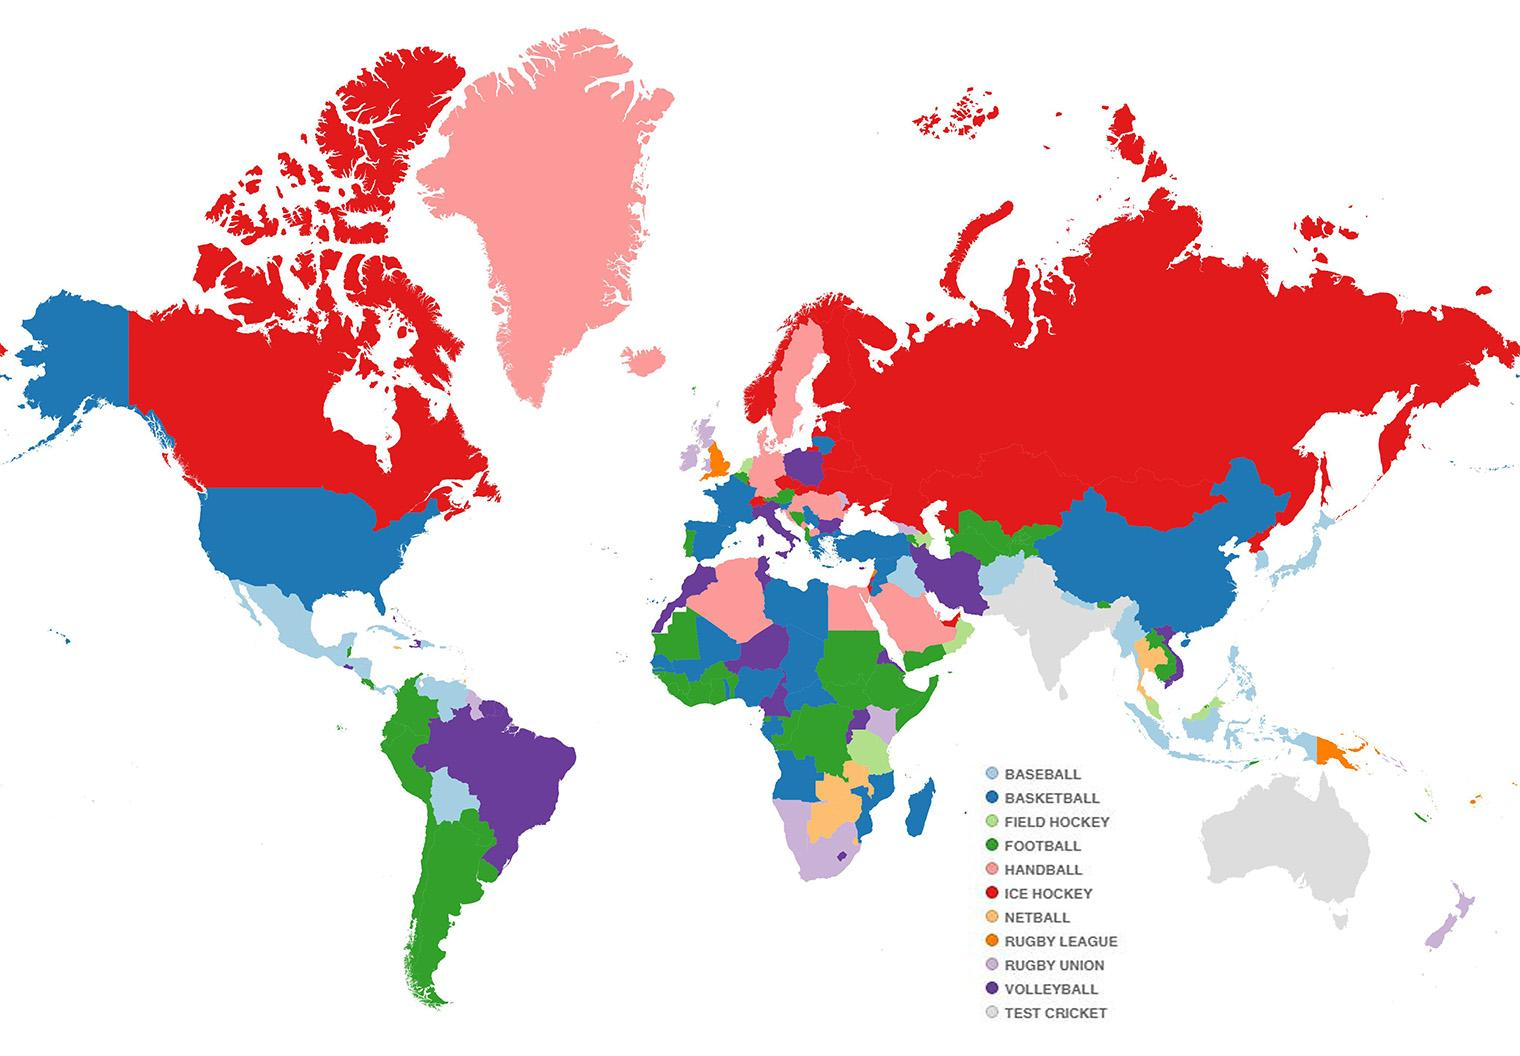 The world map according to which sport each is country is best at ...